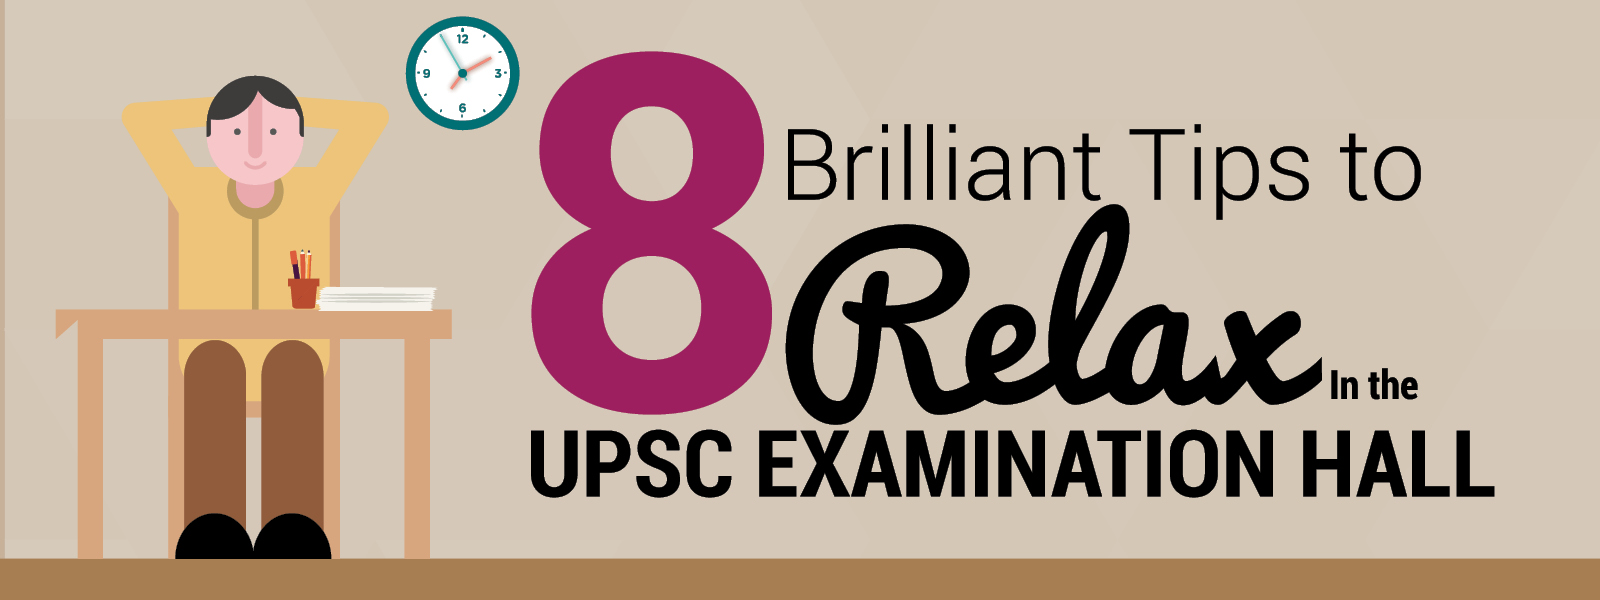 8 Brilliant Tips to Relax In the UPSC Examination Hall